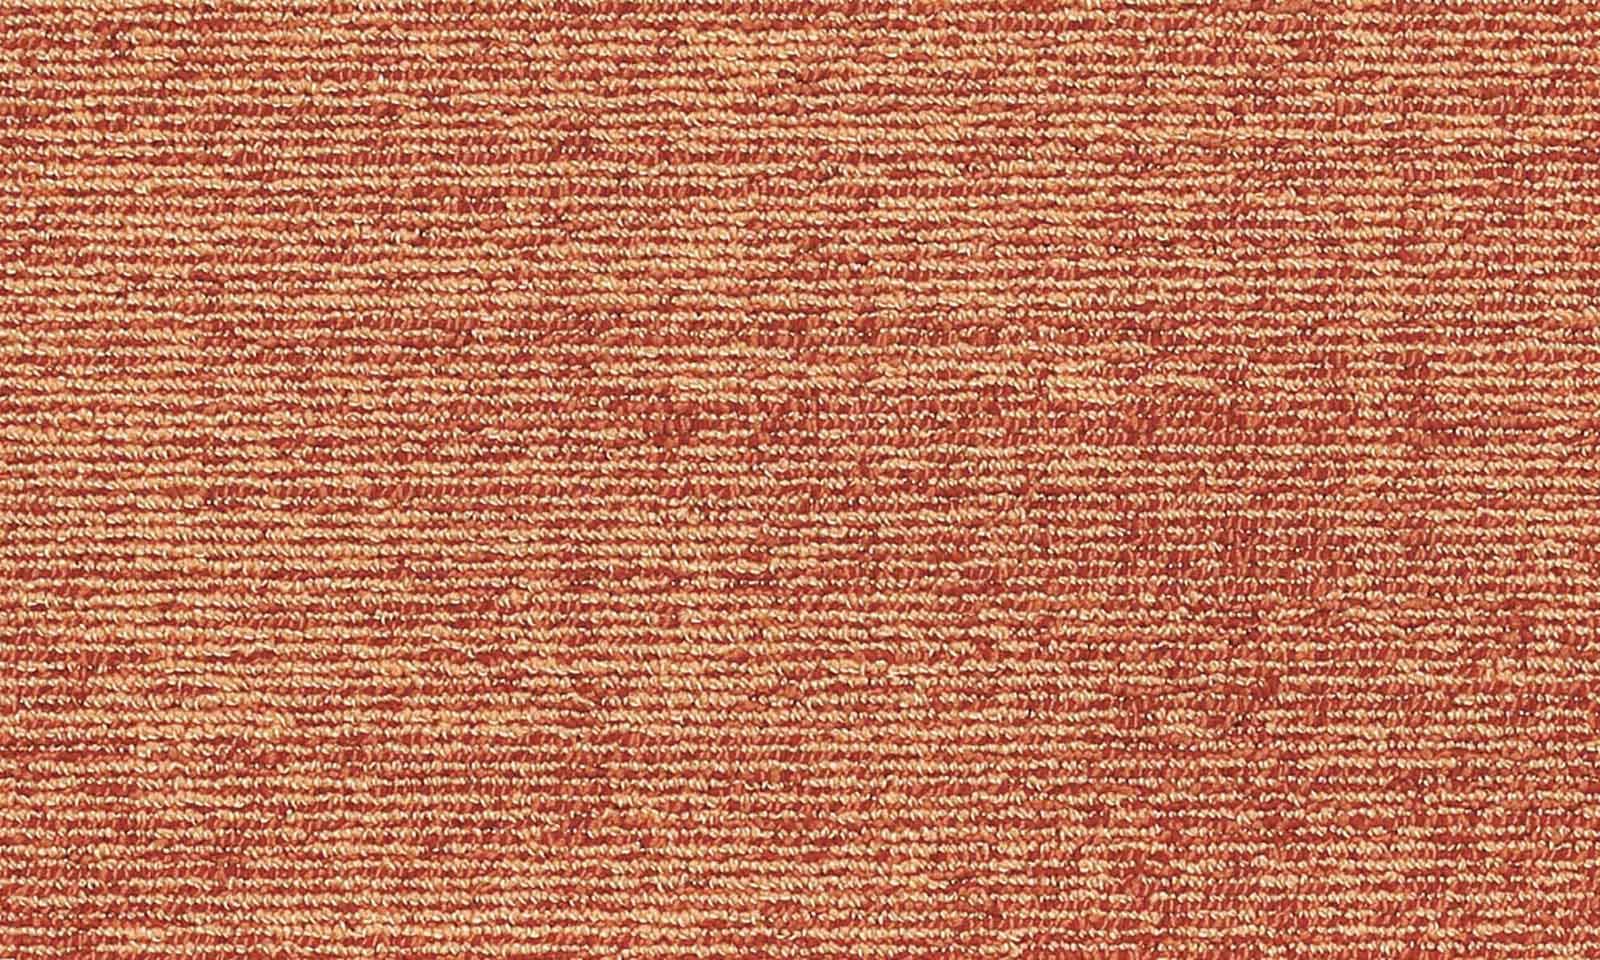 T81614 Collection - T816G Immerse Carpet